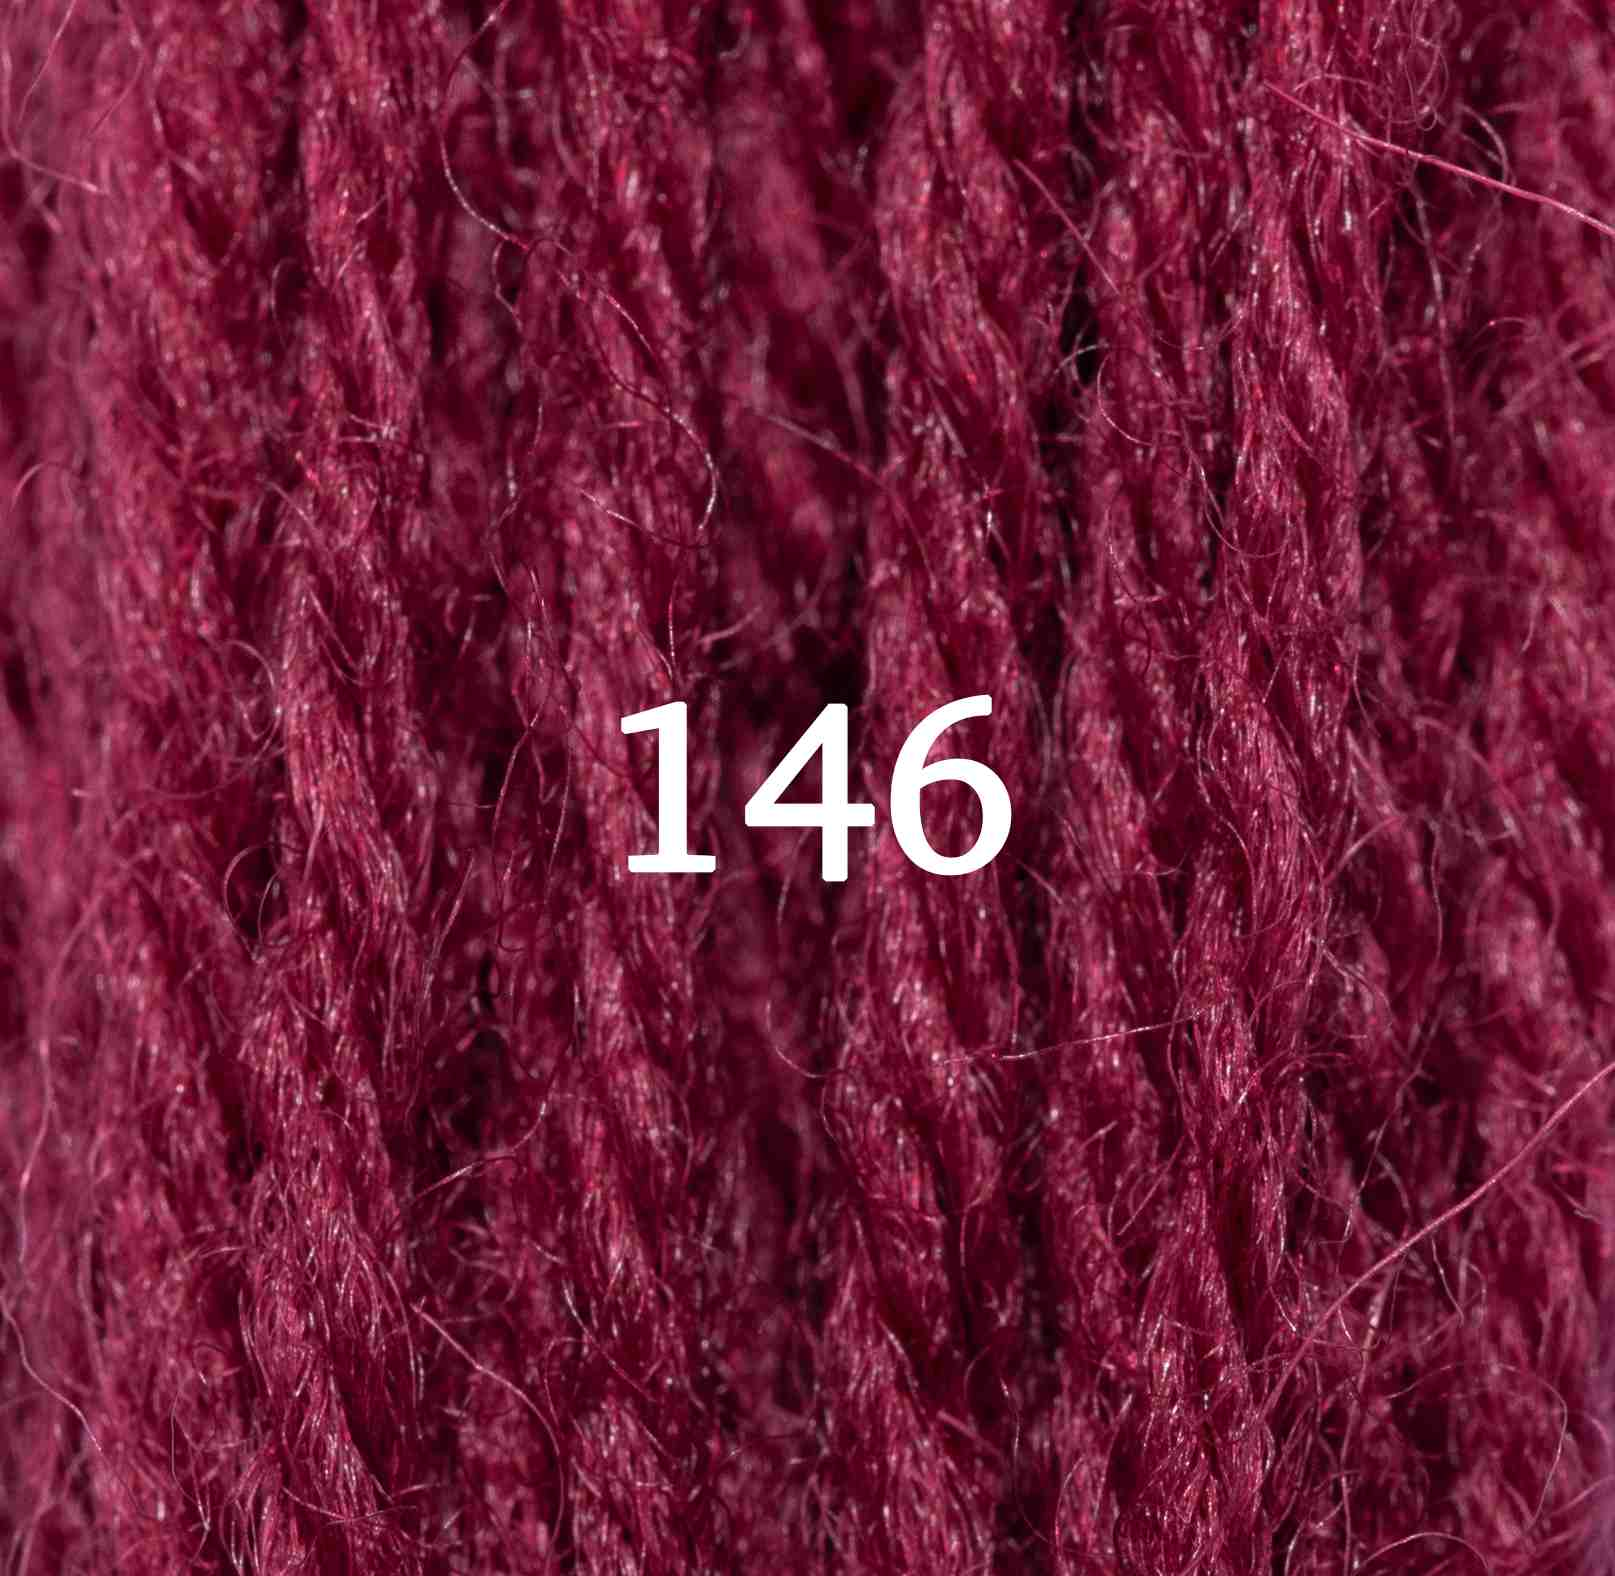 Dull-Rose-Pink-146-Discontinued-use-Rose-Pink-758